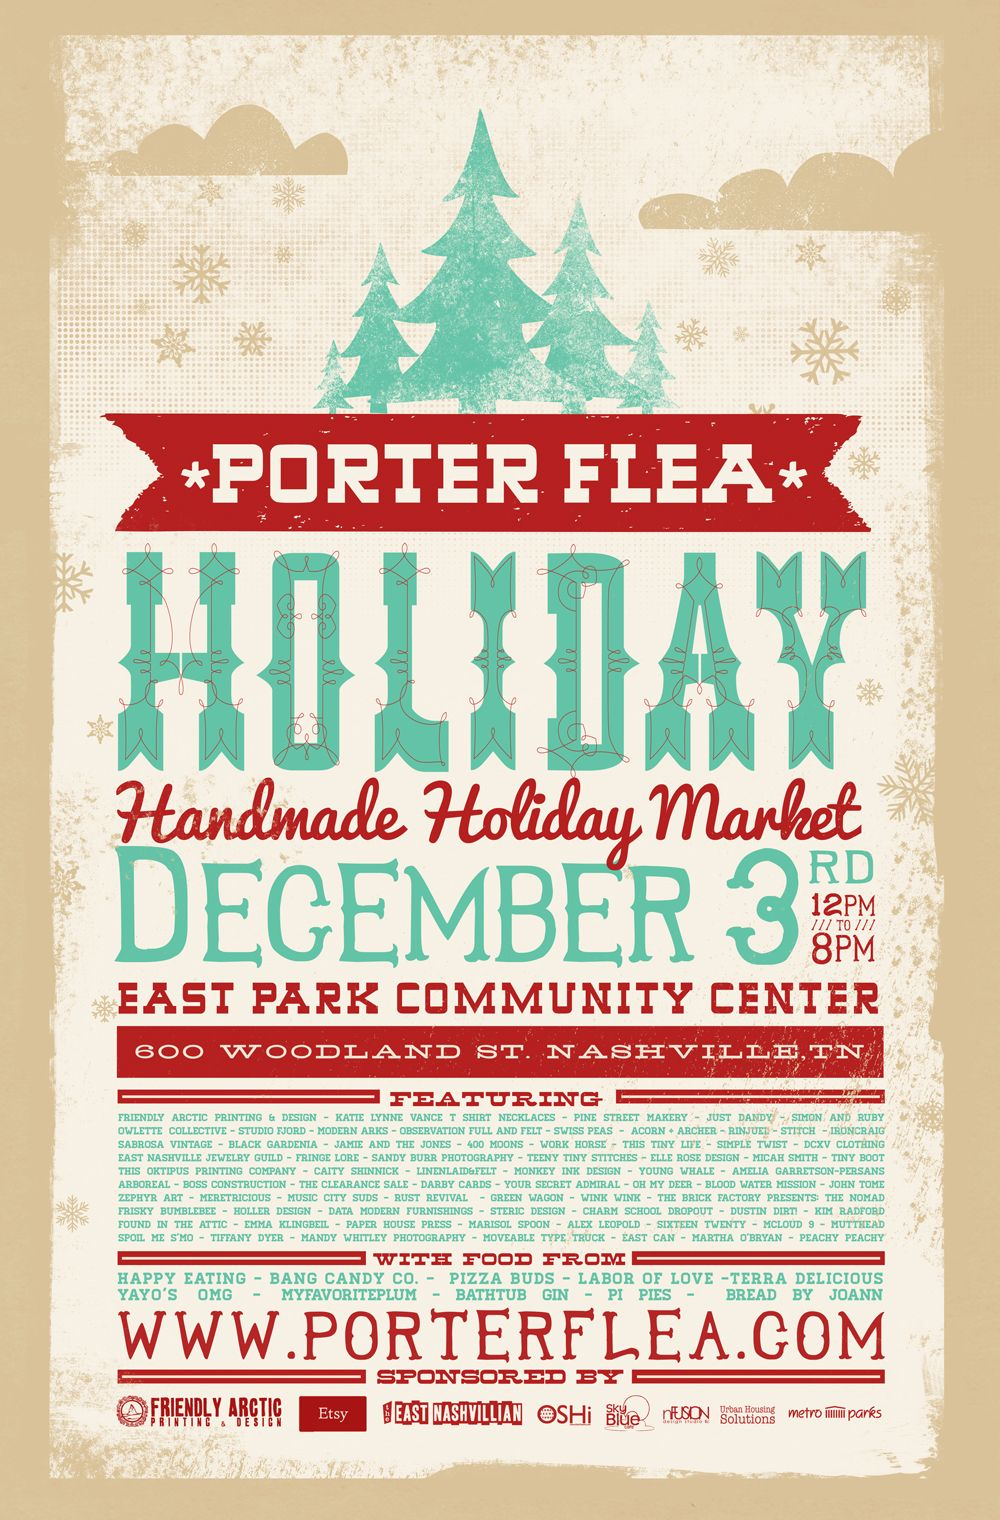 Poster design and printing - Friendly Arctic Printing Design Porter Flea Market Nashville Poster